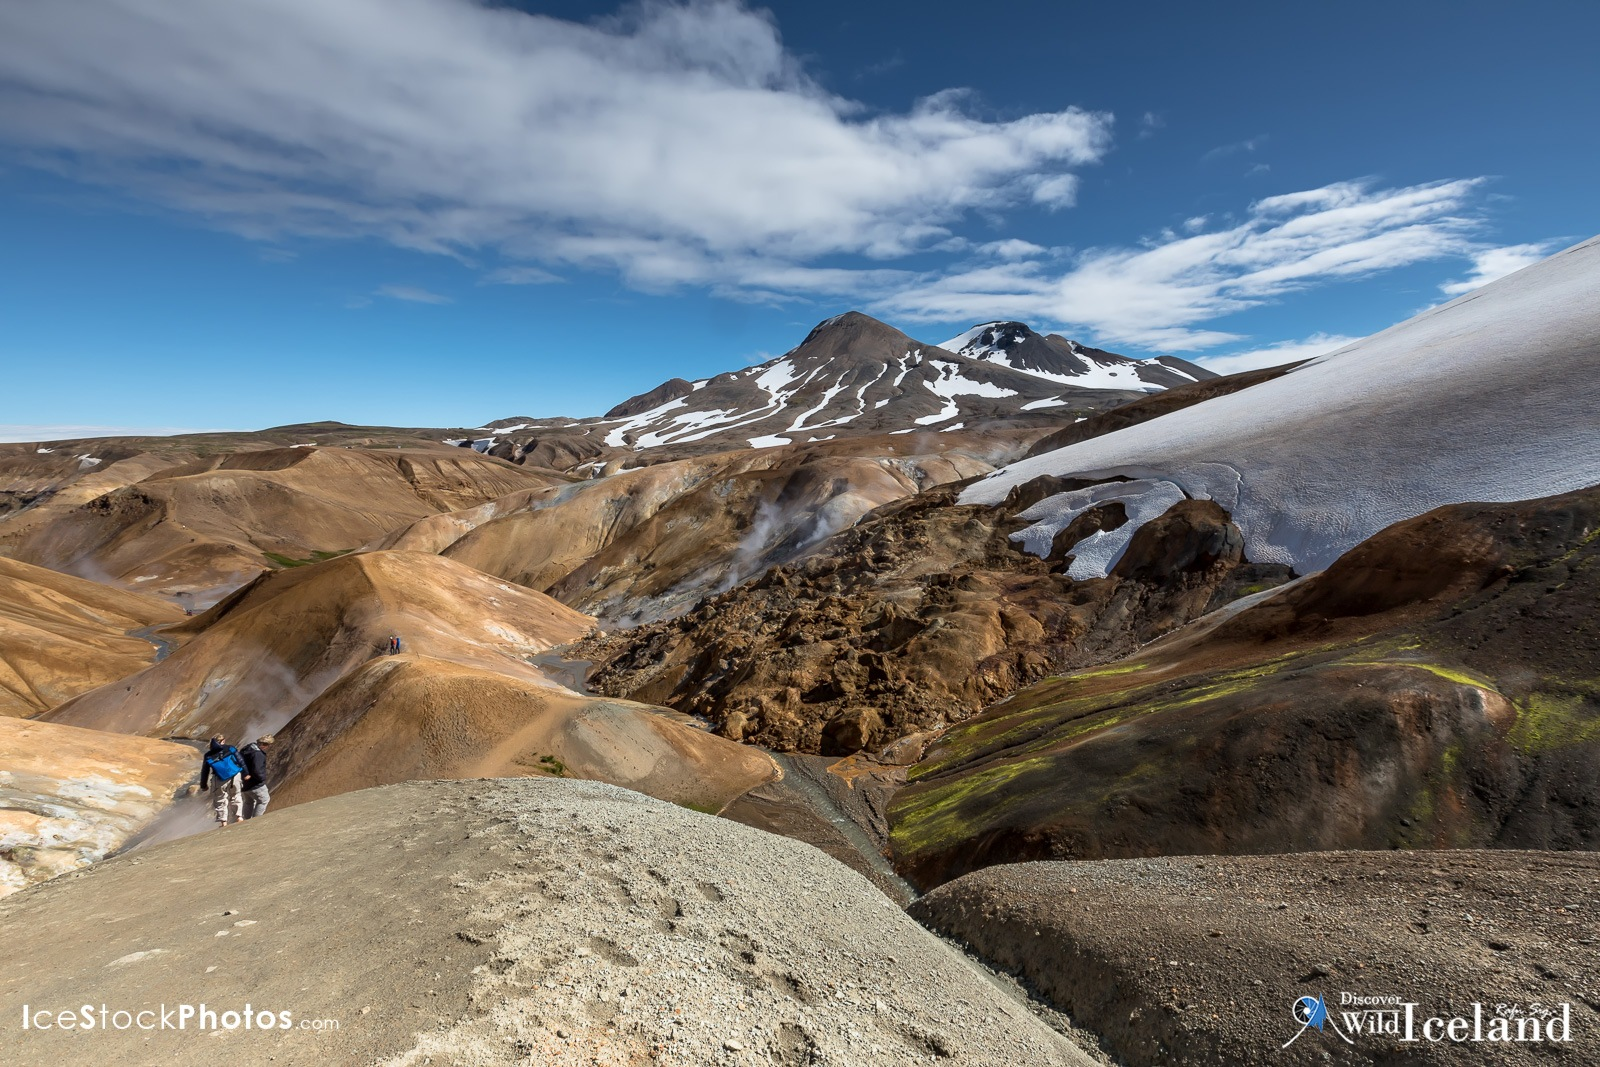 Discover Wild Iceland .is - Documenting at Kerlingarfjöll, Geothermal area in the Highlands of Icela by Rafn Sig,-  @ Discover Wild Iceland.com